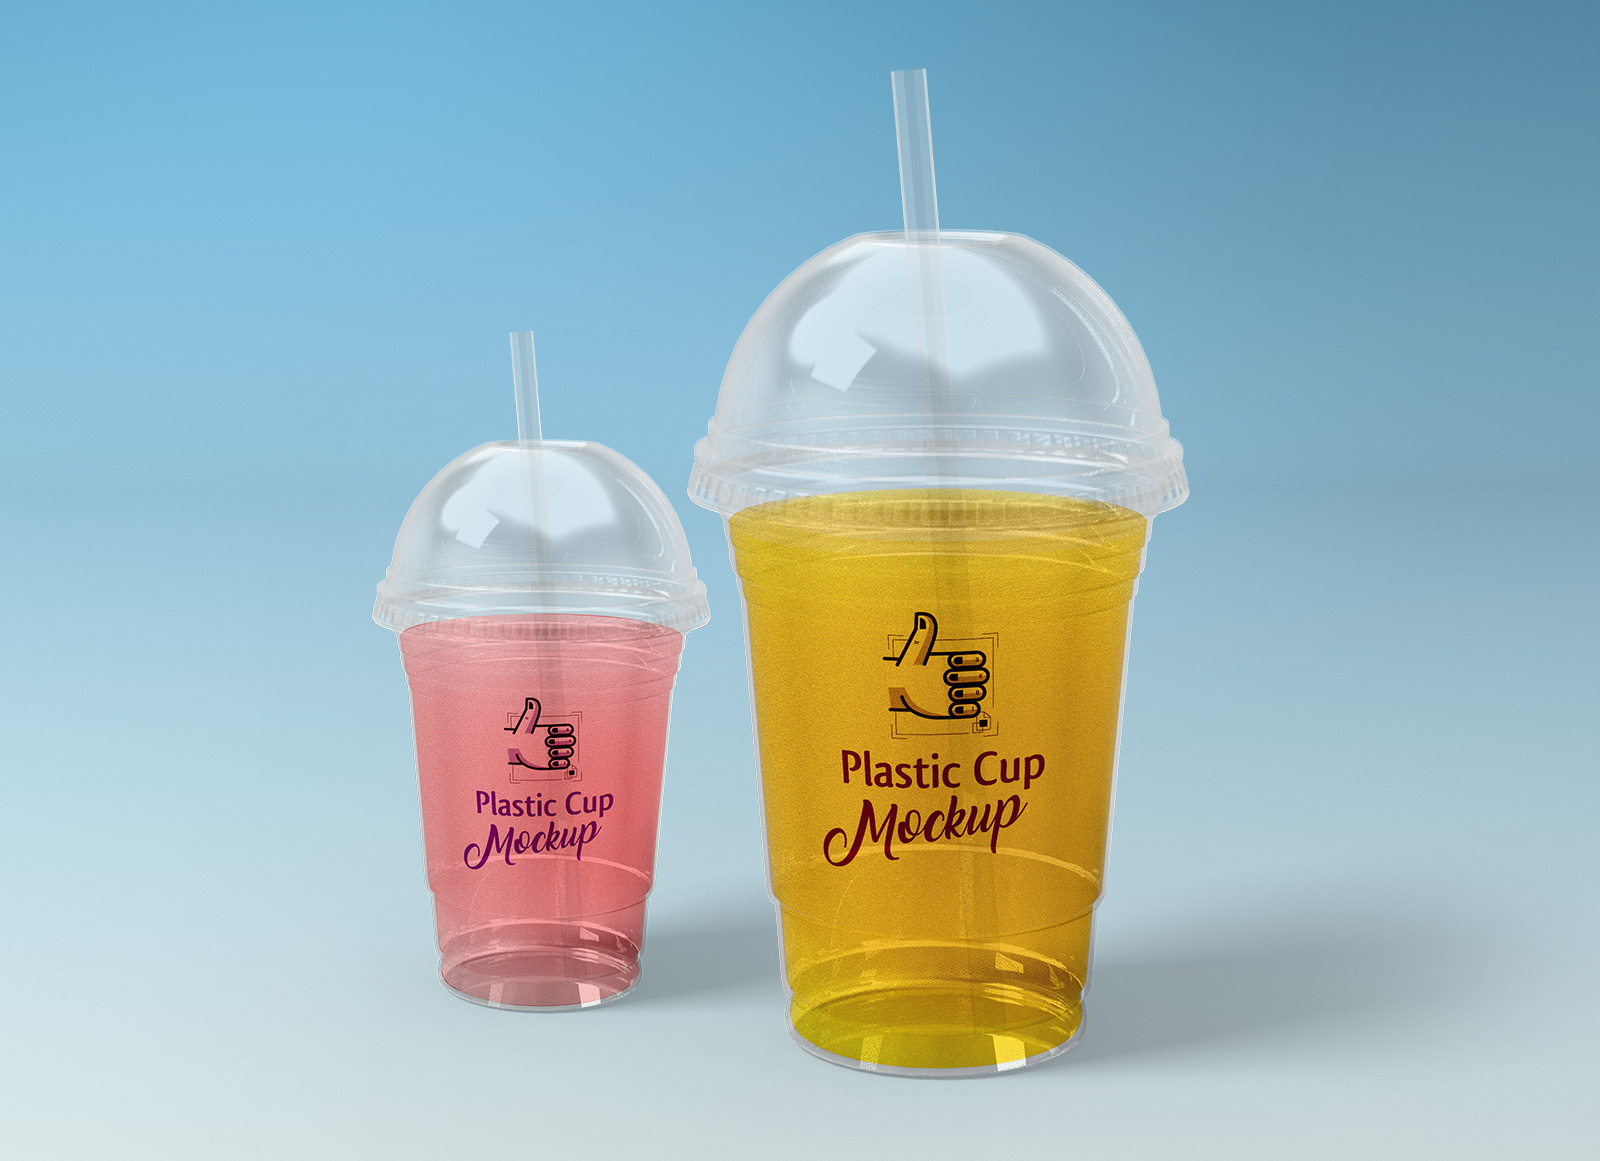 Free-Plastic-Ice-Cream-Cup-Packaging-Mockup-PSD